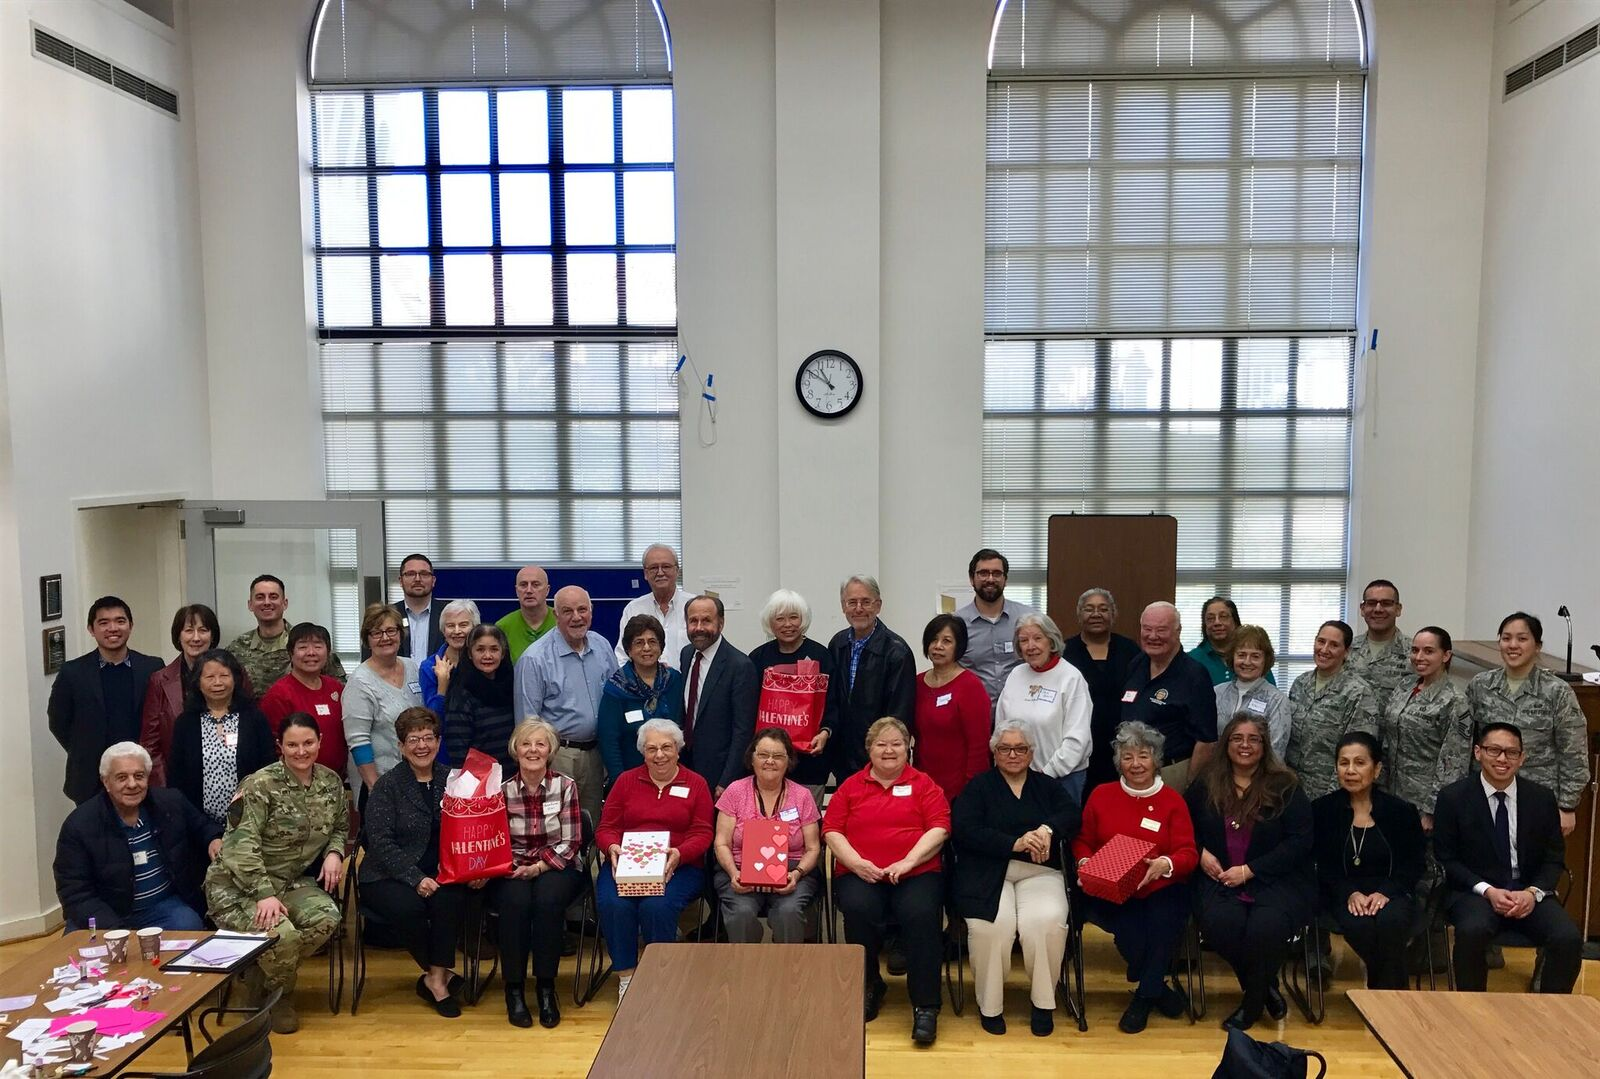 SSF Senior Citizens' 'Operation Valentine' Sends 1,400 Handmade Cards to California Servicemen and Women